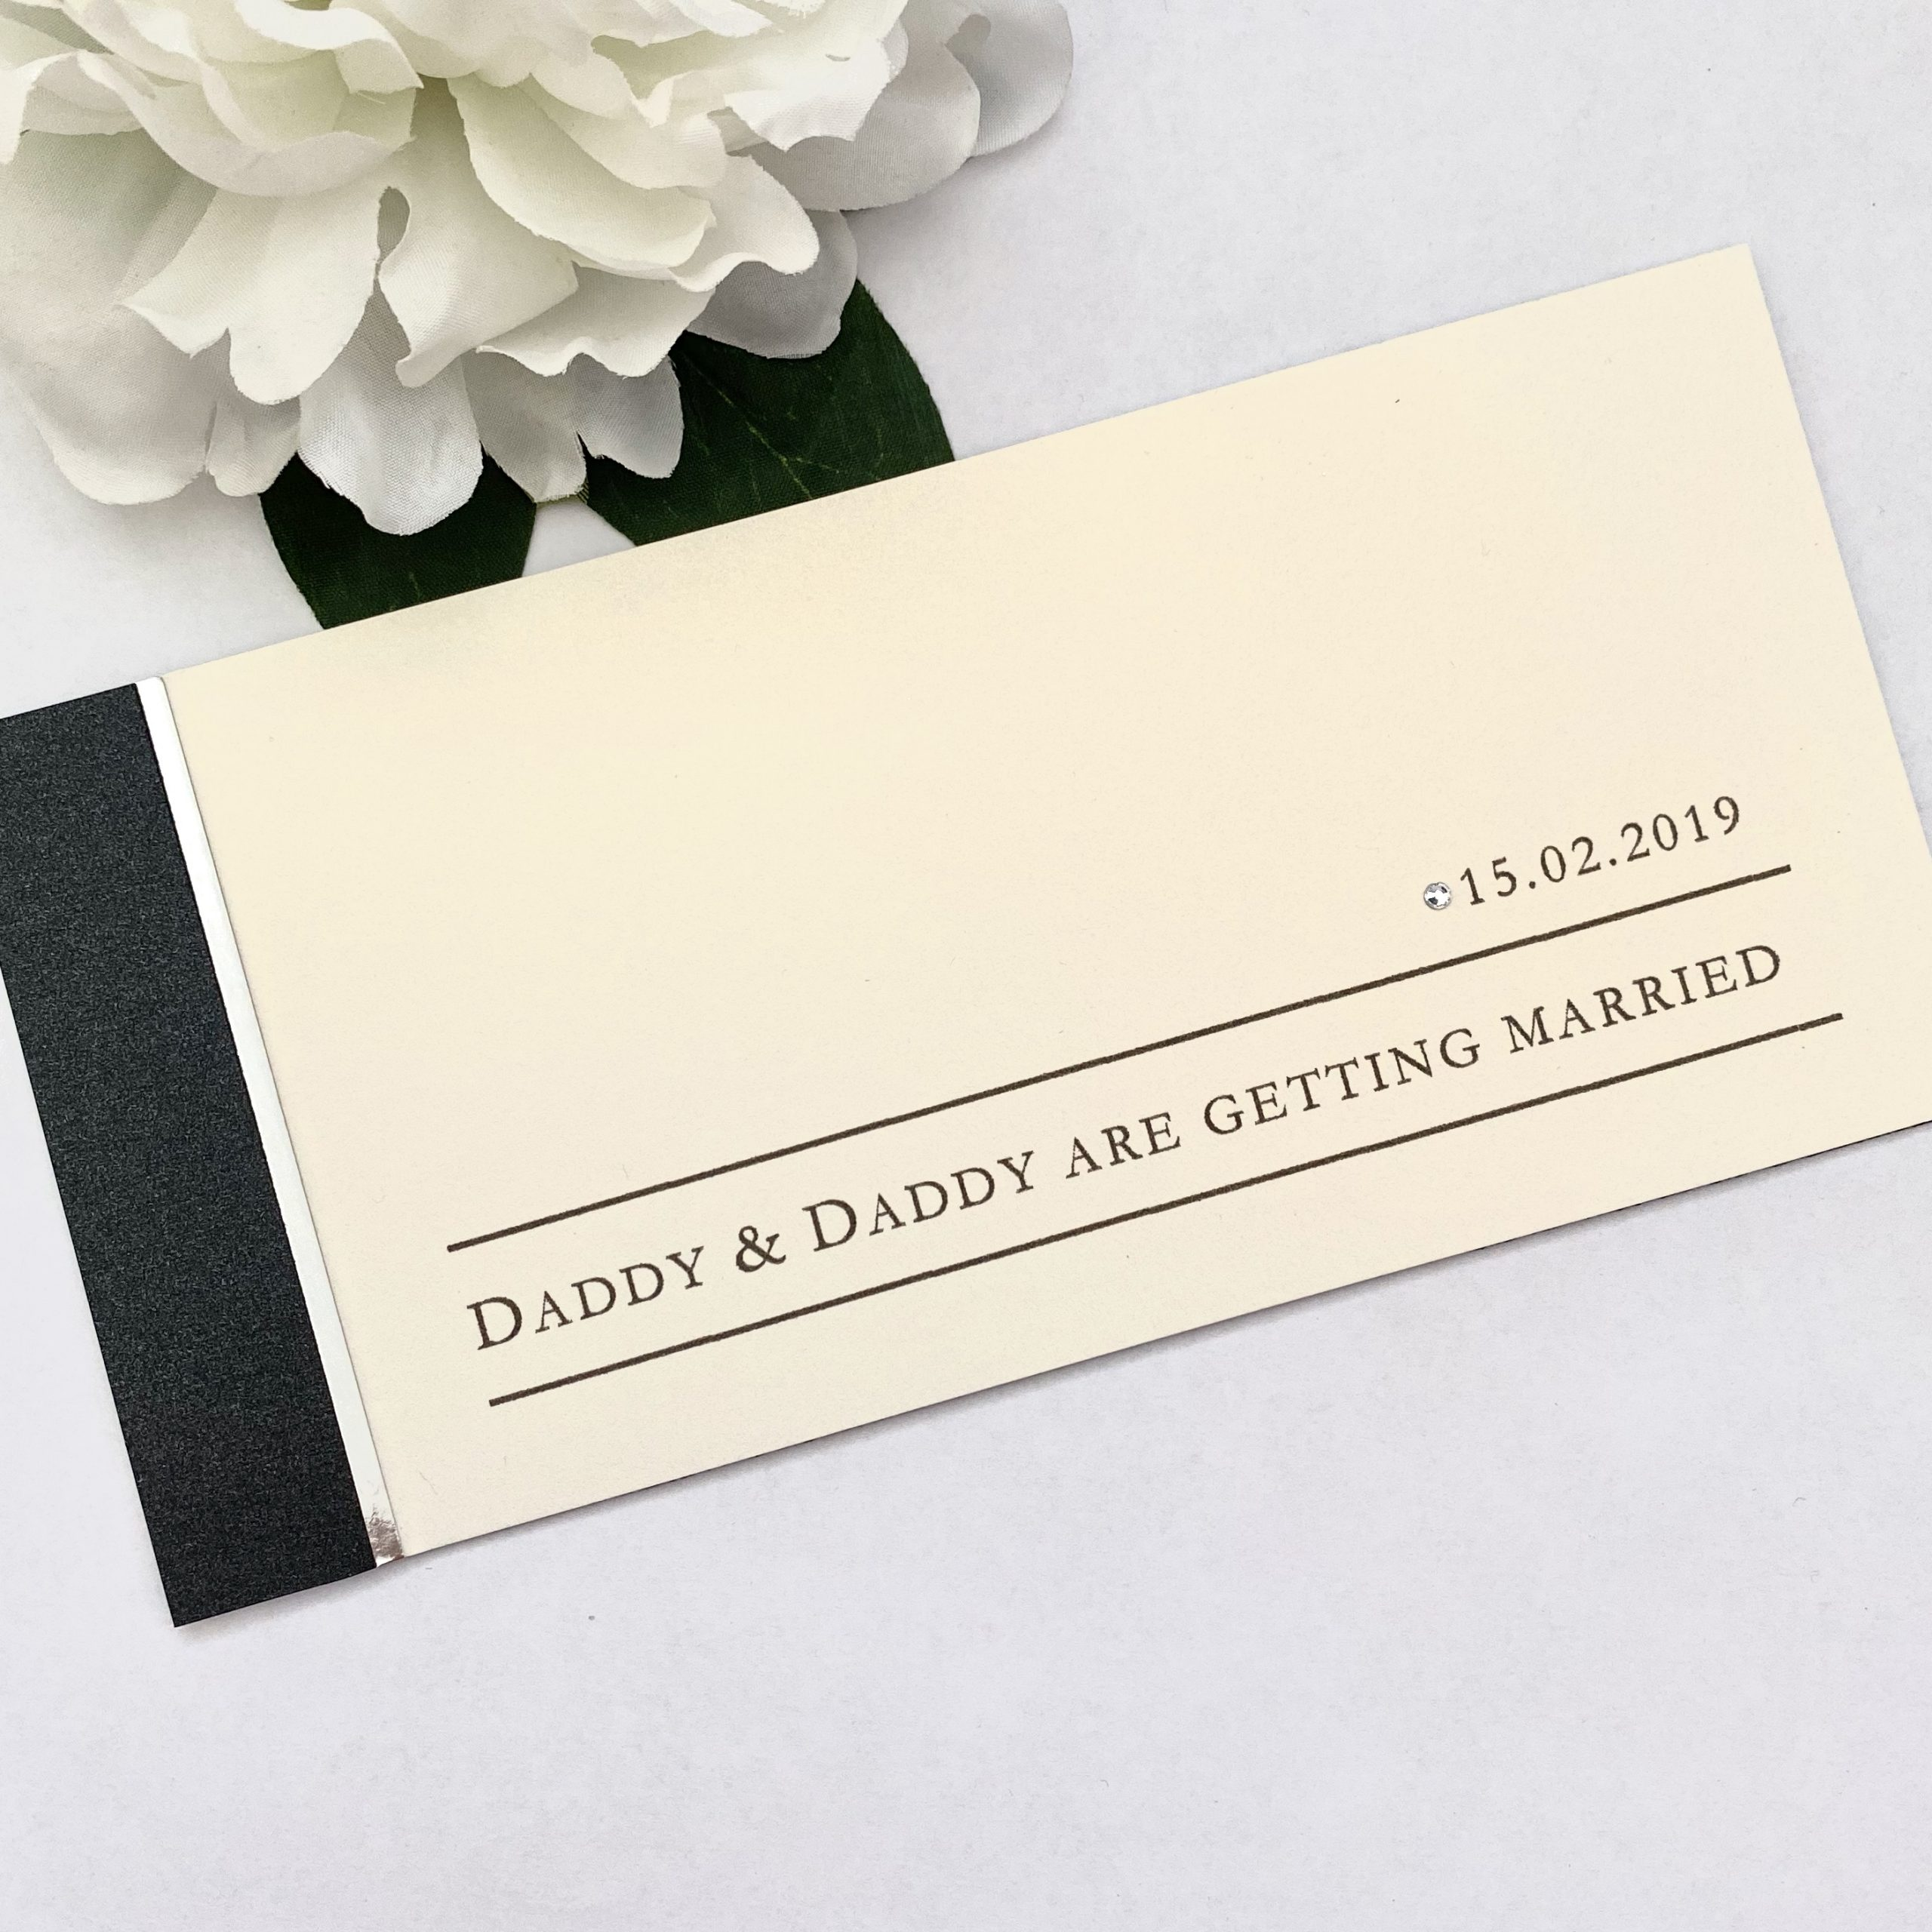 daddy and daddy are getting married cheque book invitation